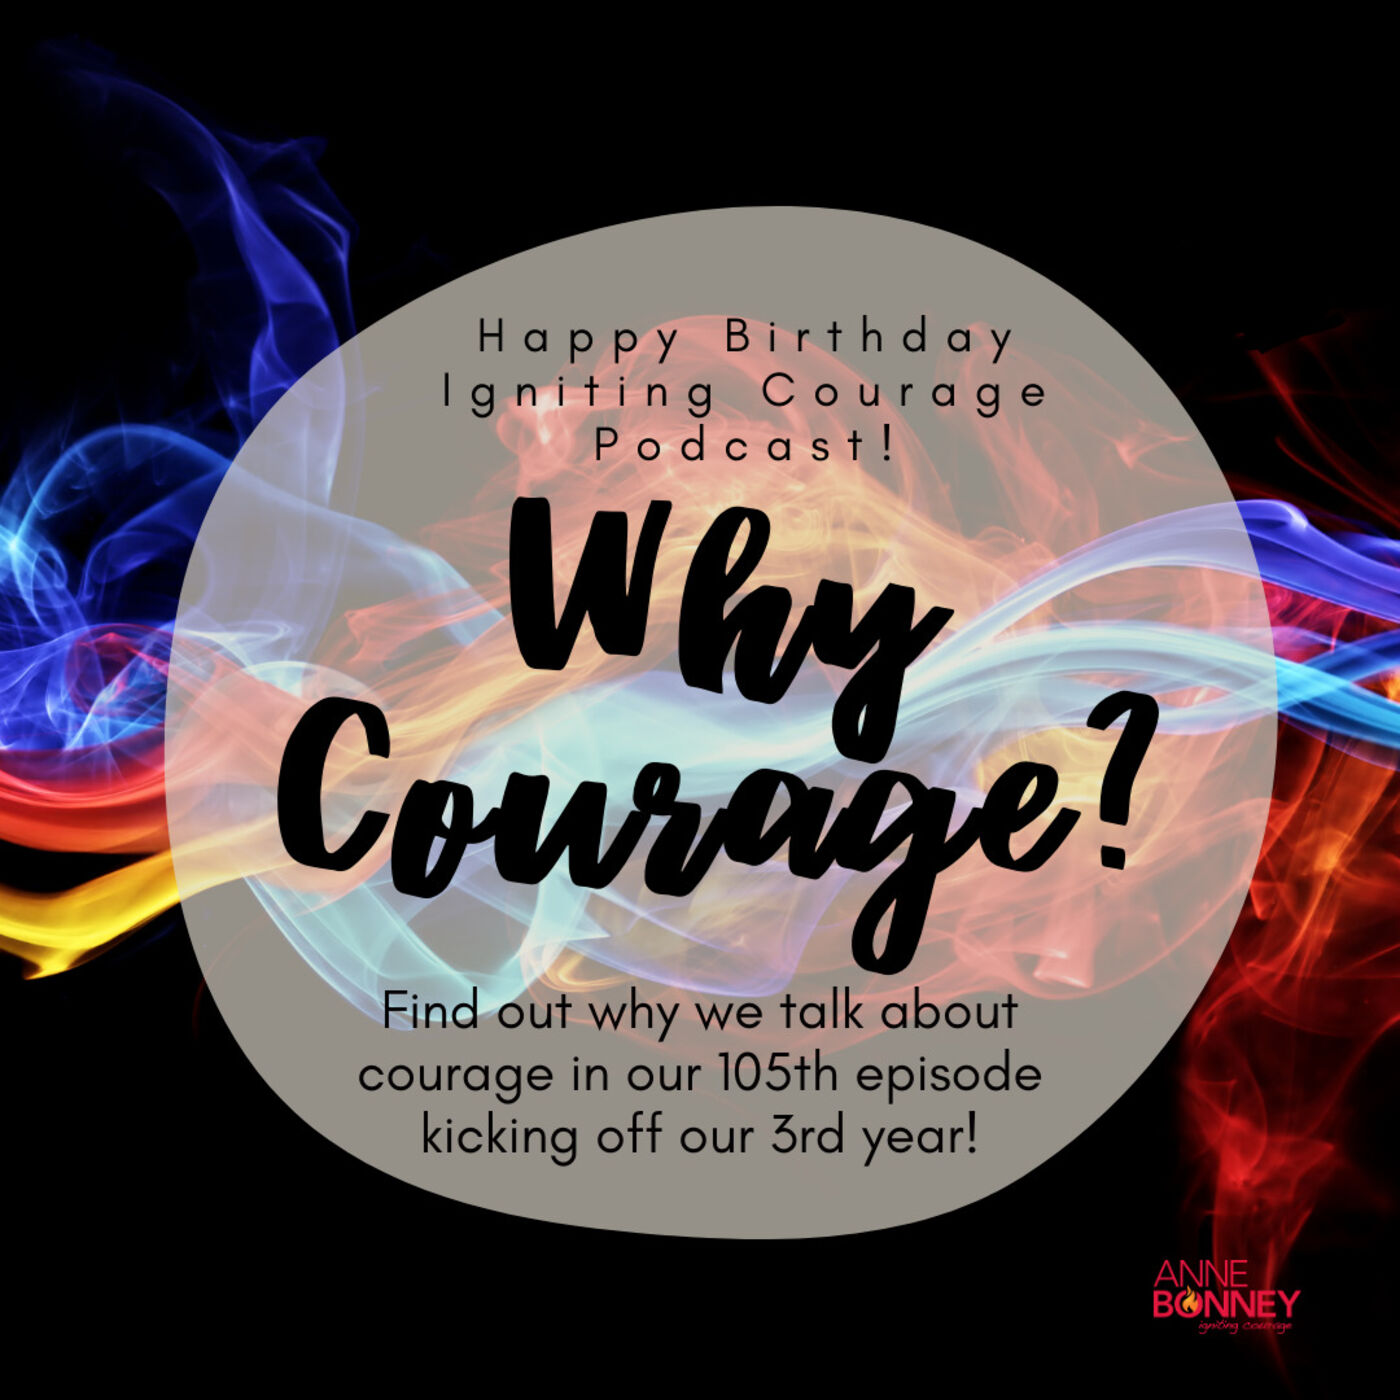 IGNITING COURAGE Podcast Episode 105: Why Courage?